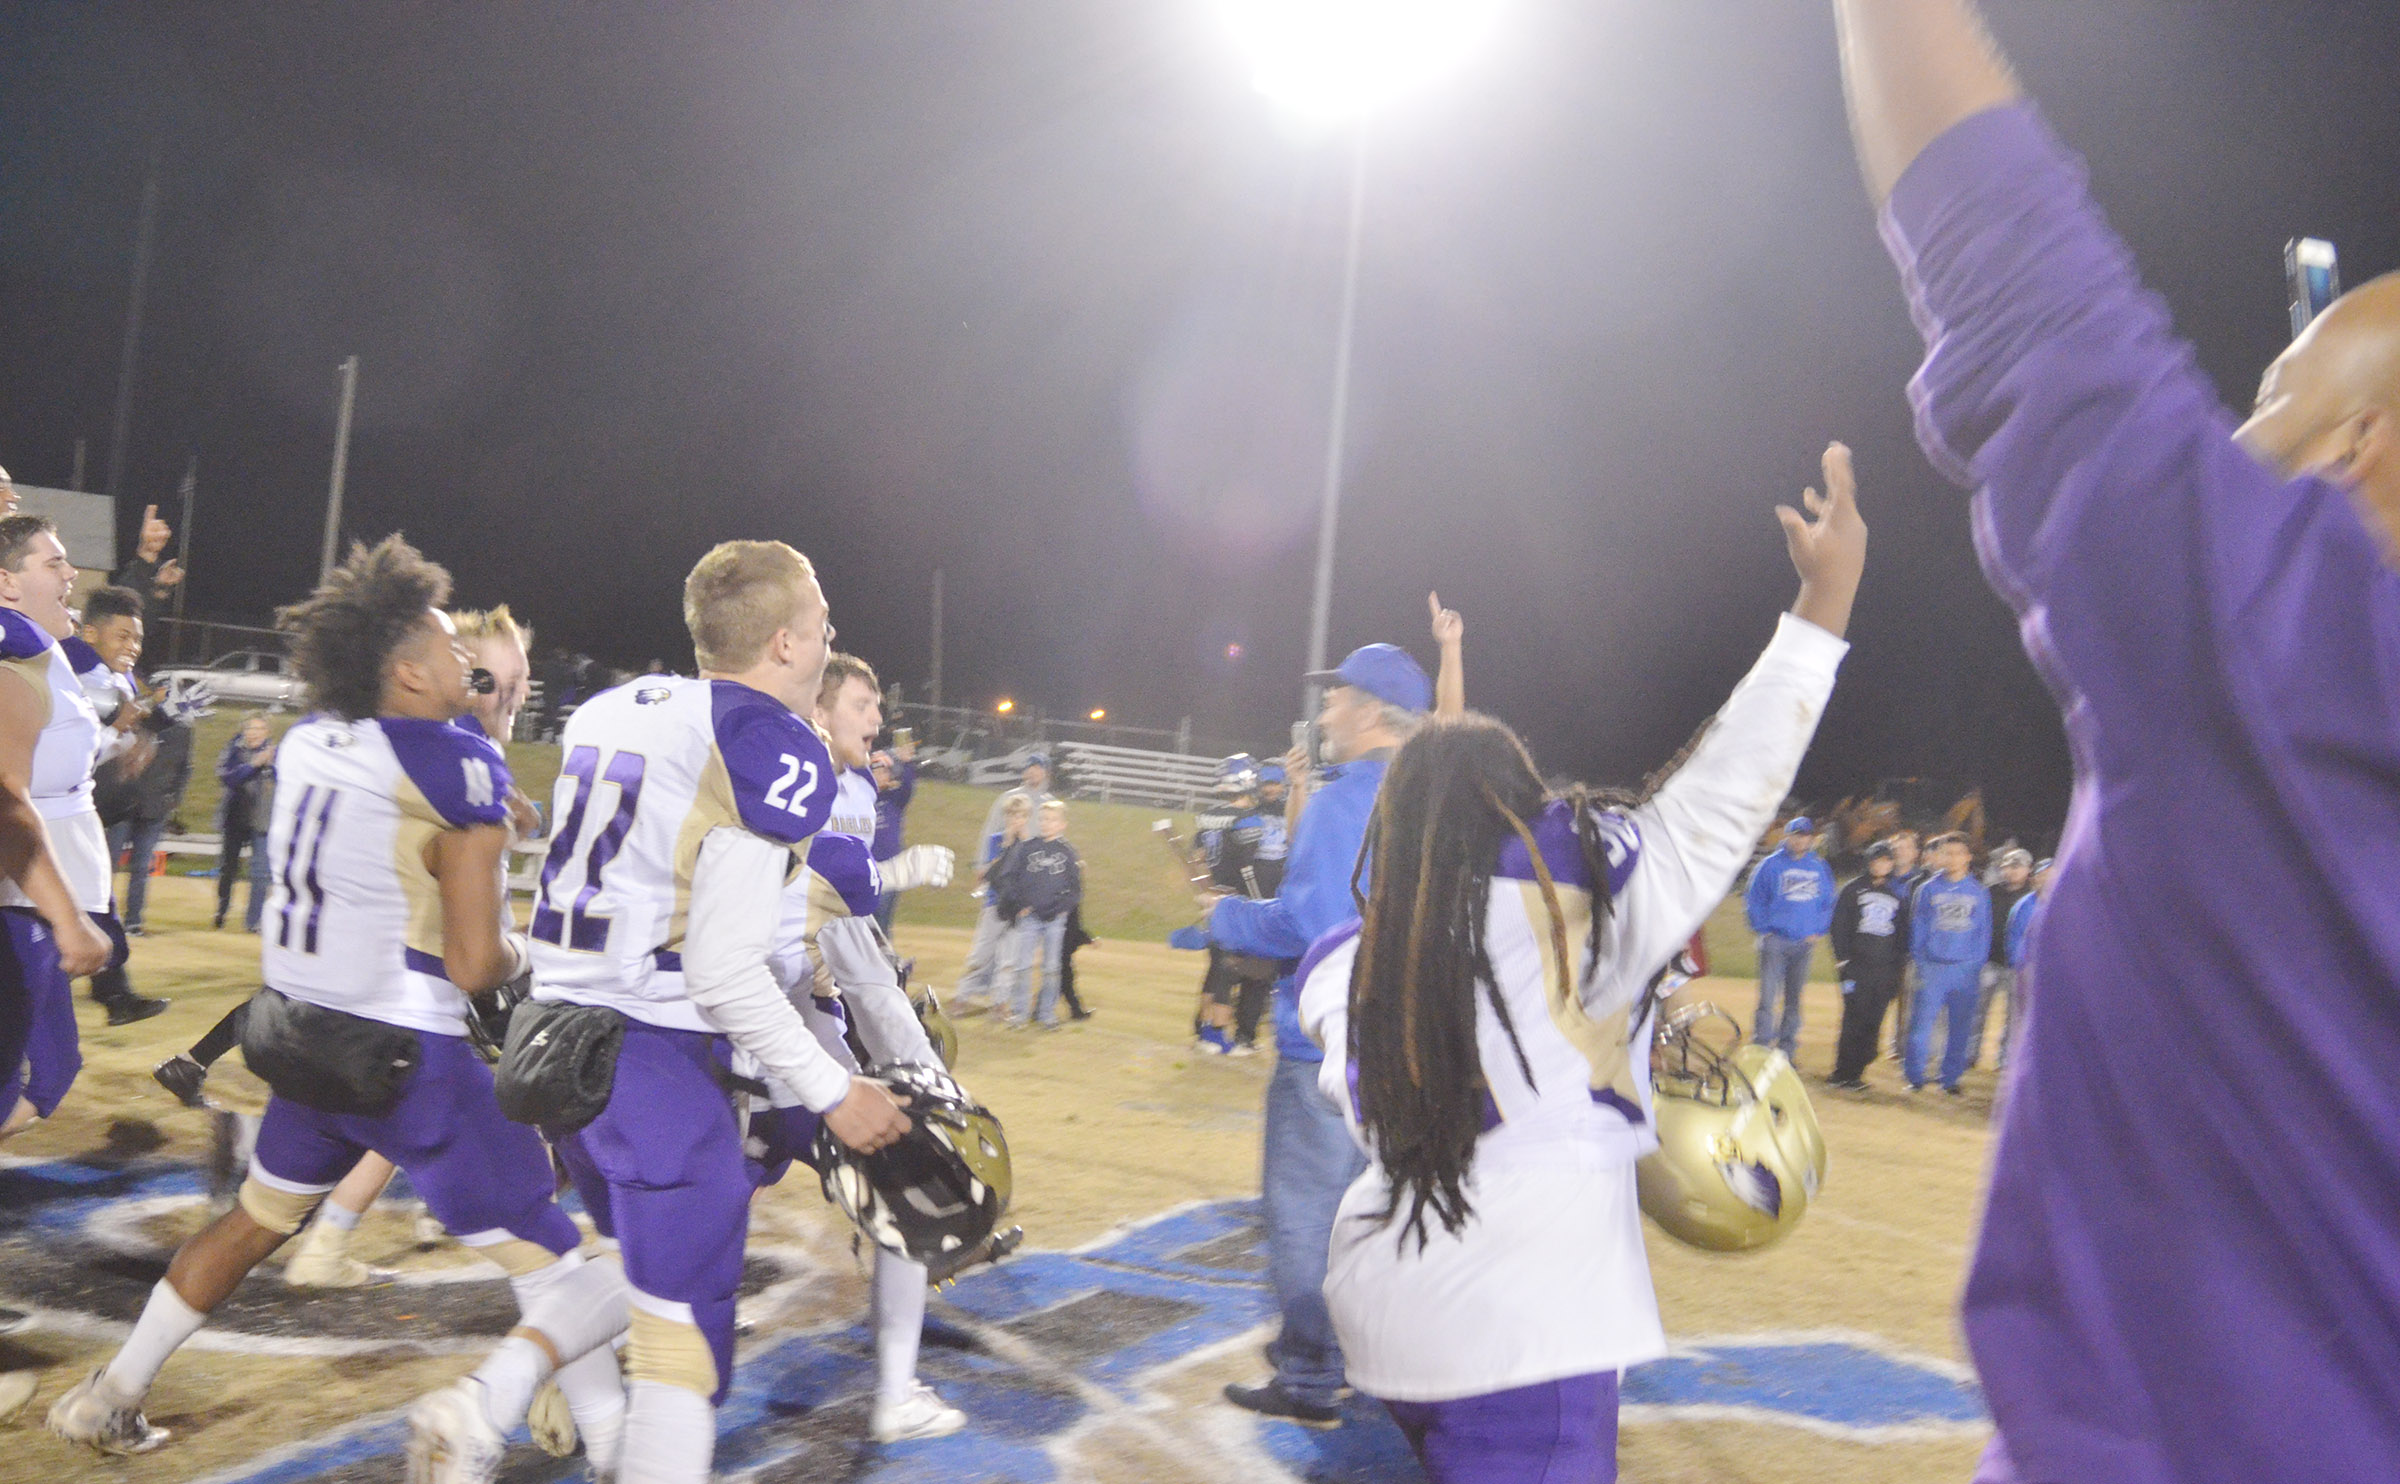 CHS football players celebrate.